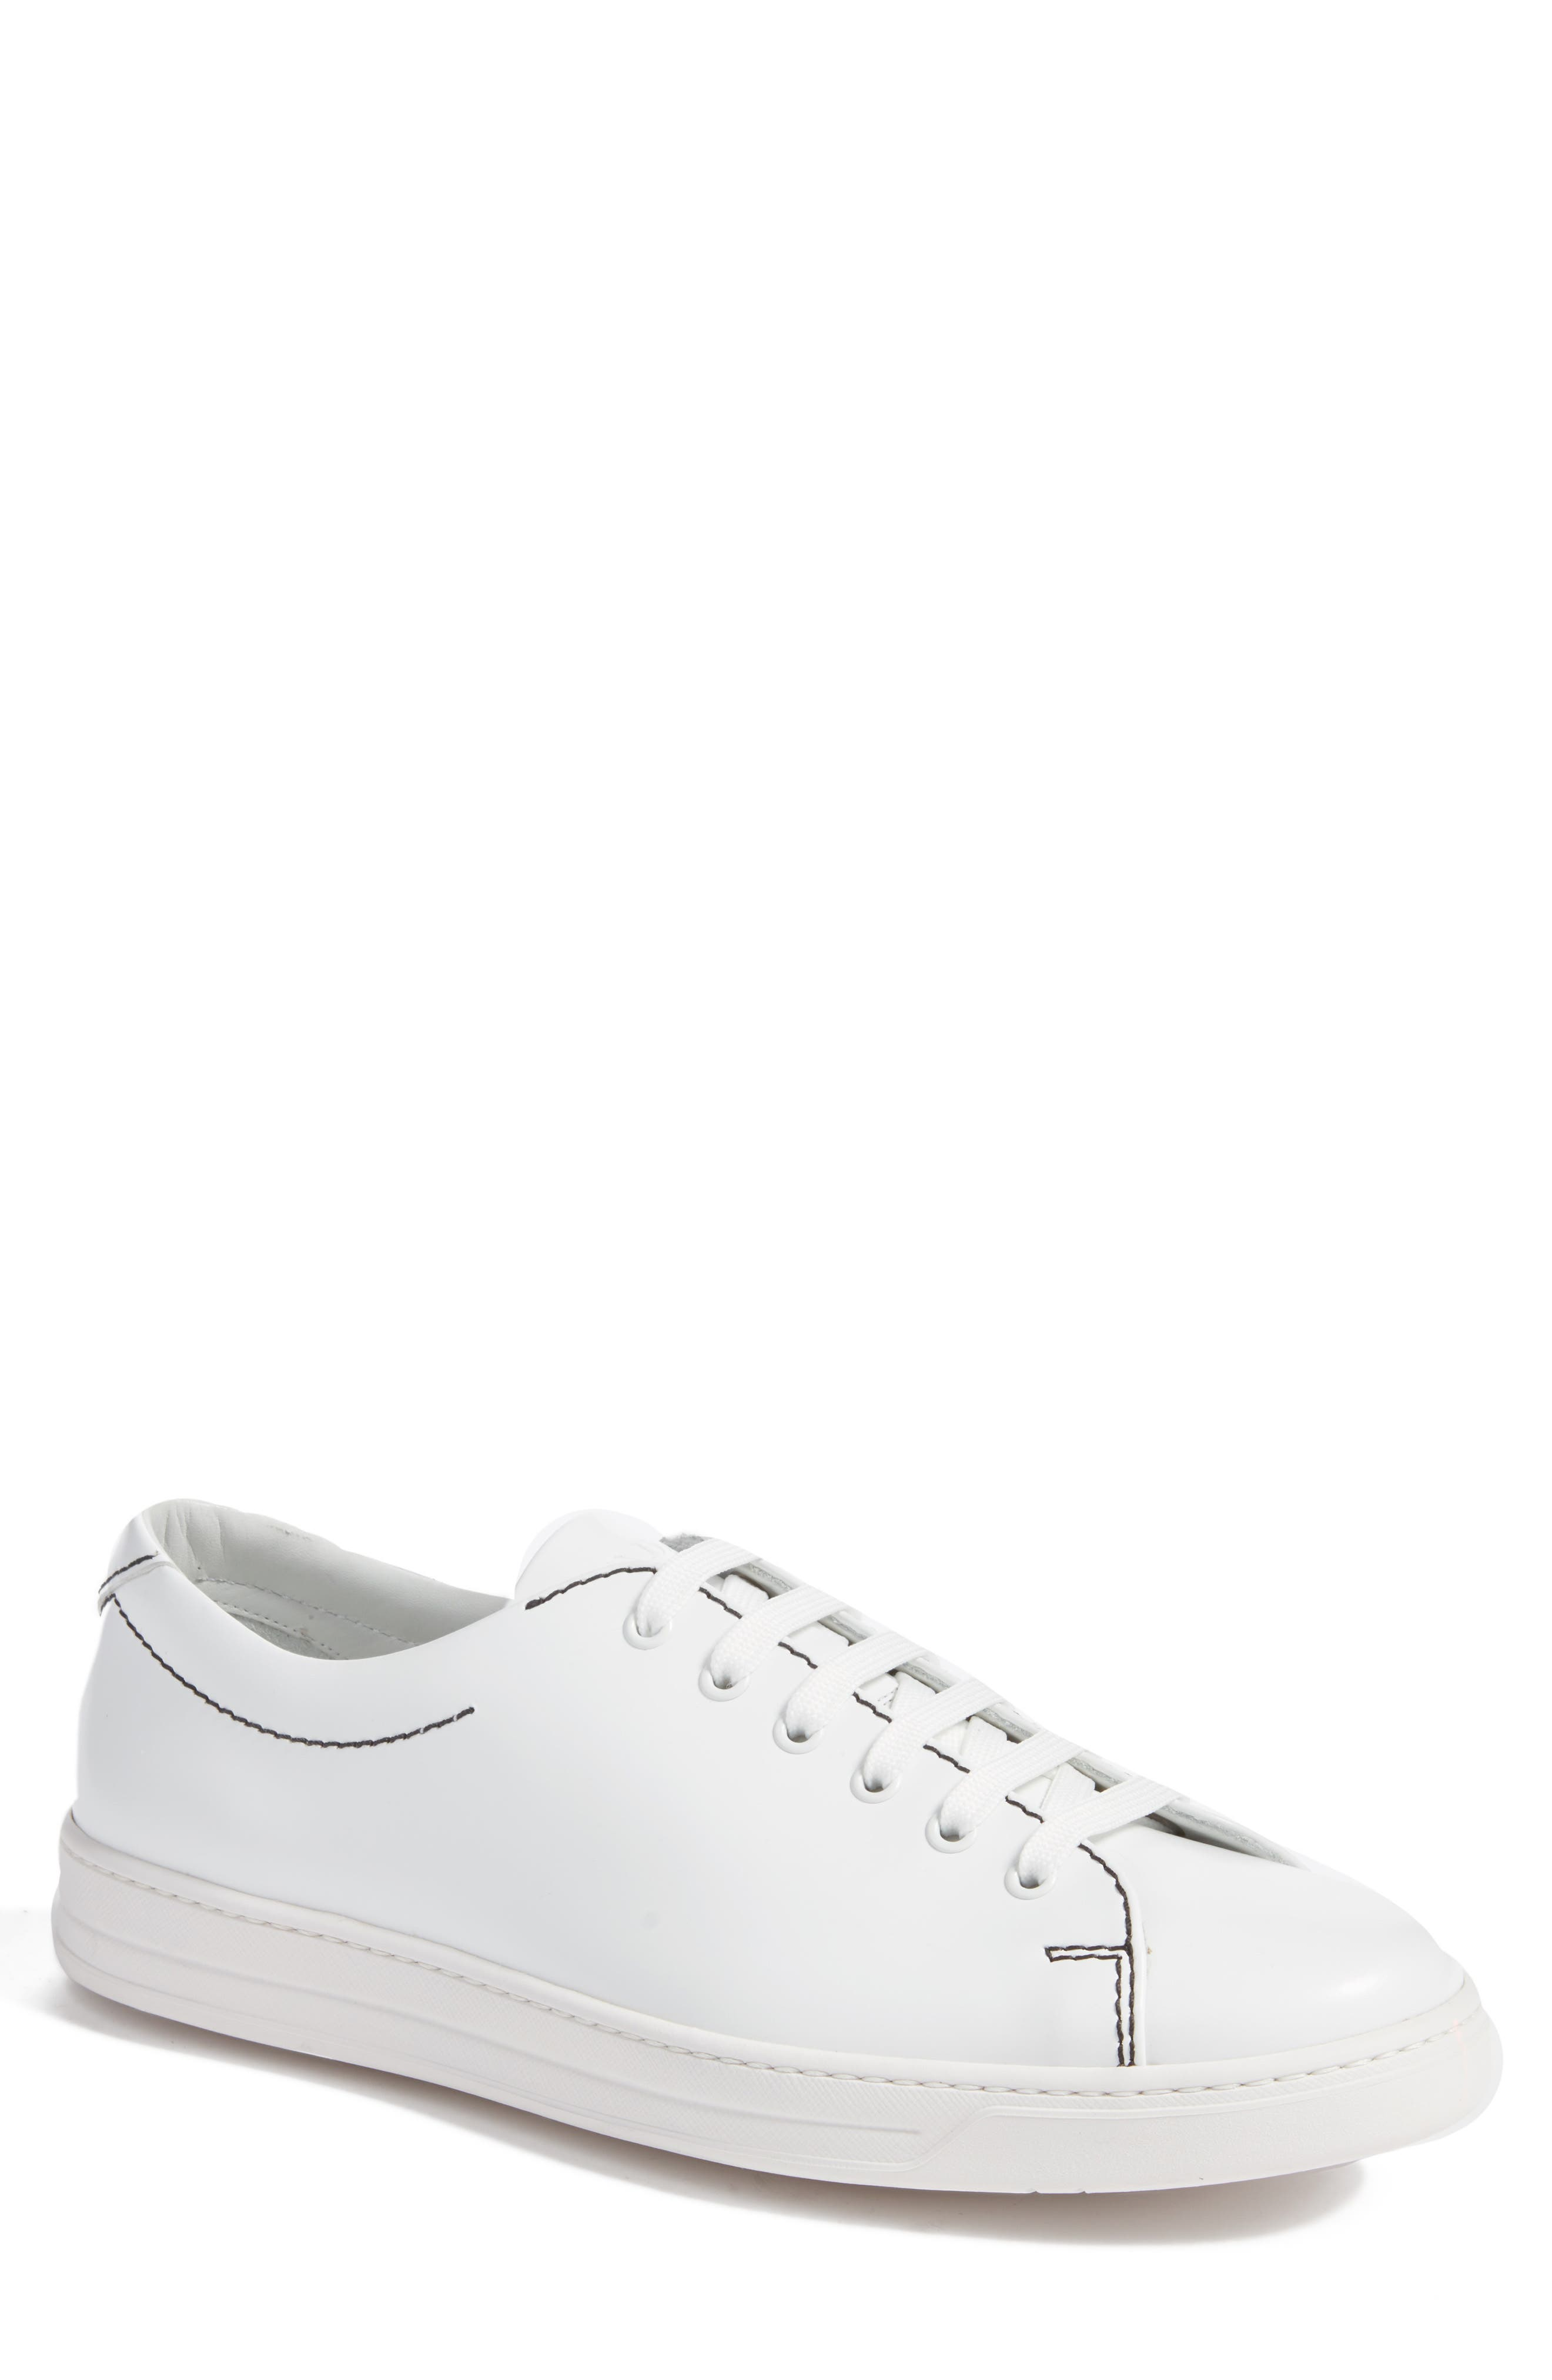 Main Image - Prada Linea Rossa Low Top Sneaker (Men)